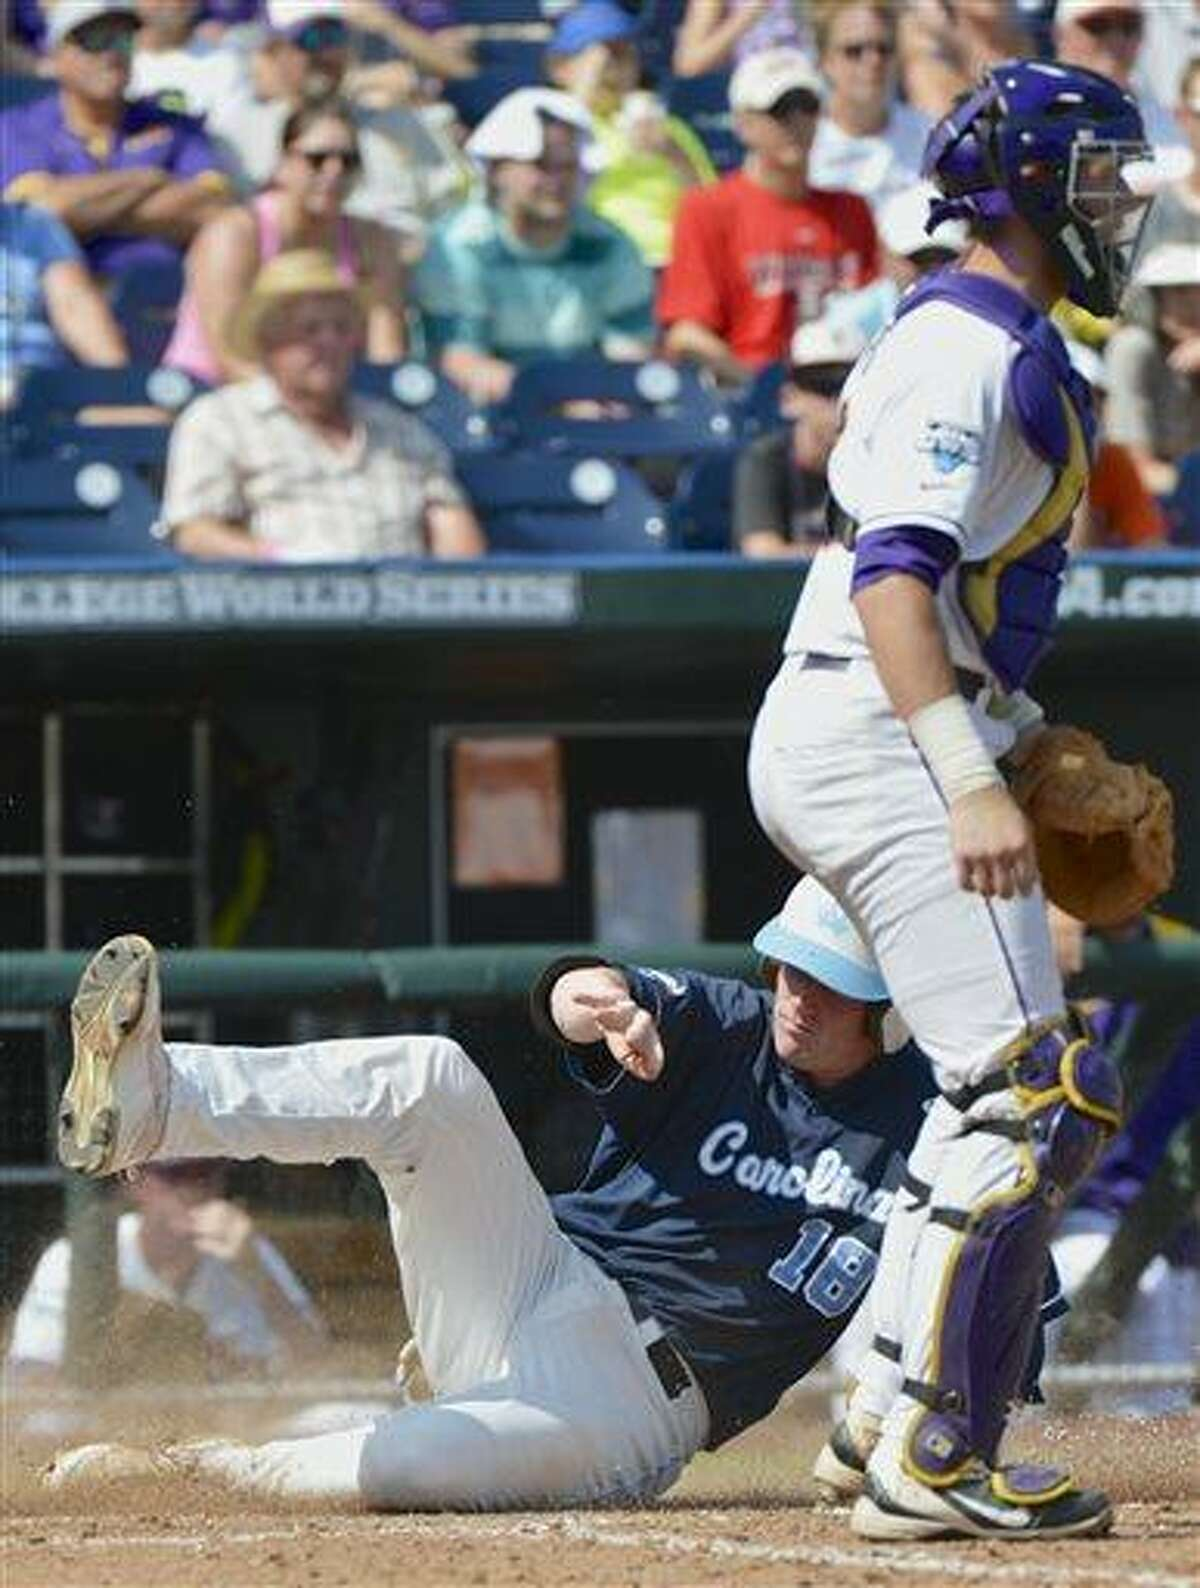 North Carolina's Colin Moran (18) slides in at home plate to score on an RBI single by Skye Bolt as LSU catcher Ty Ross looks on during the seventh inning of an NCAA College World Series elimination baseball game in Omaha, Neb., Tuesday, June 18, 2013. (AP Photo/Ted Kirk)